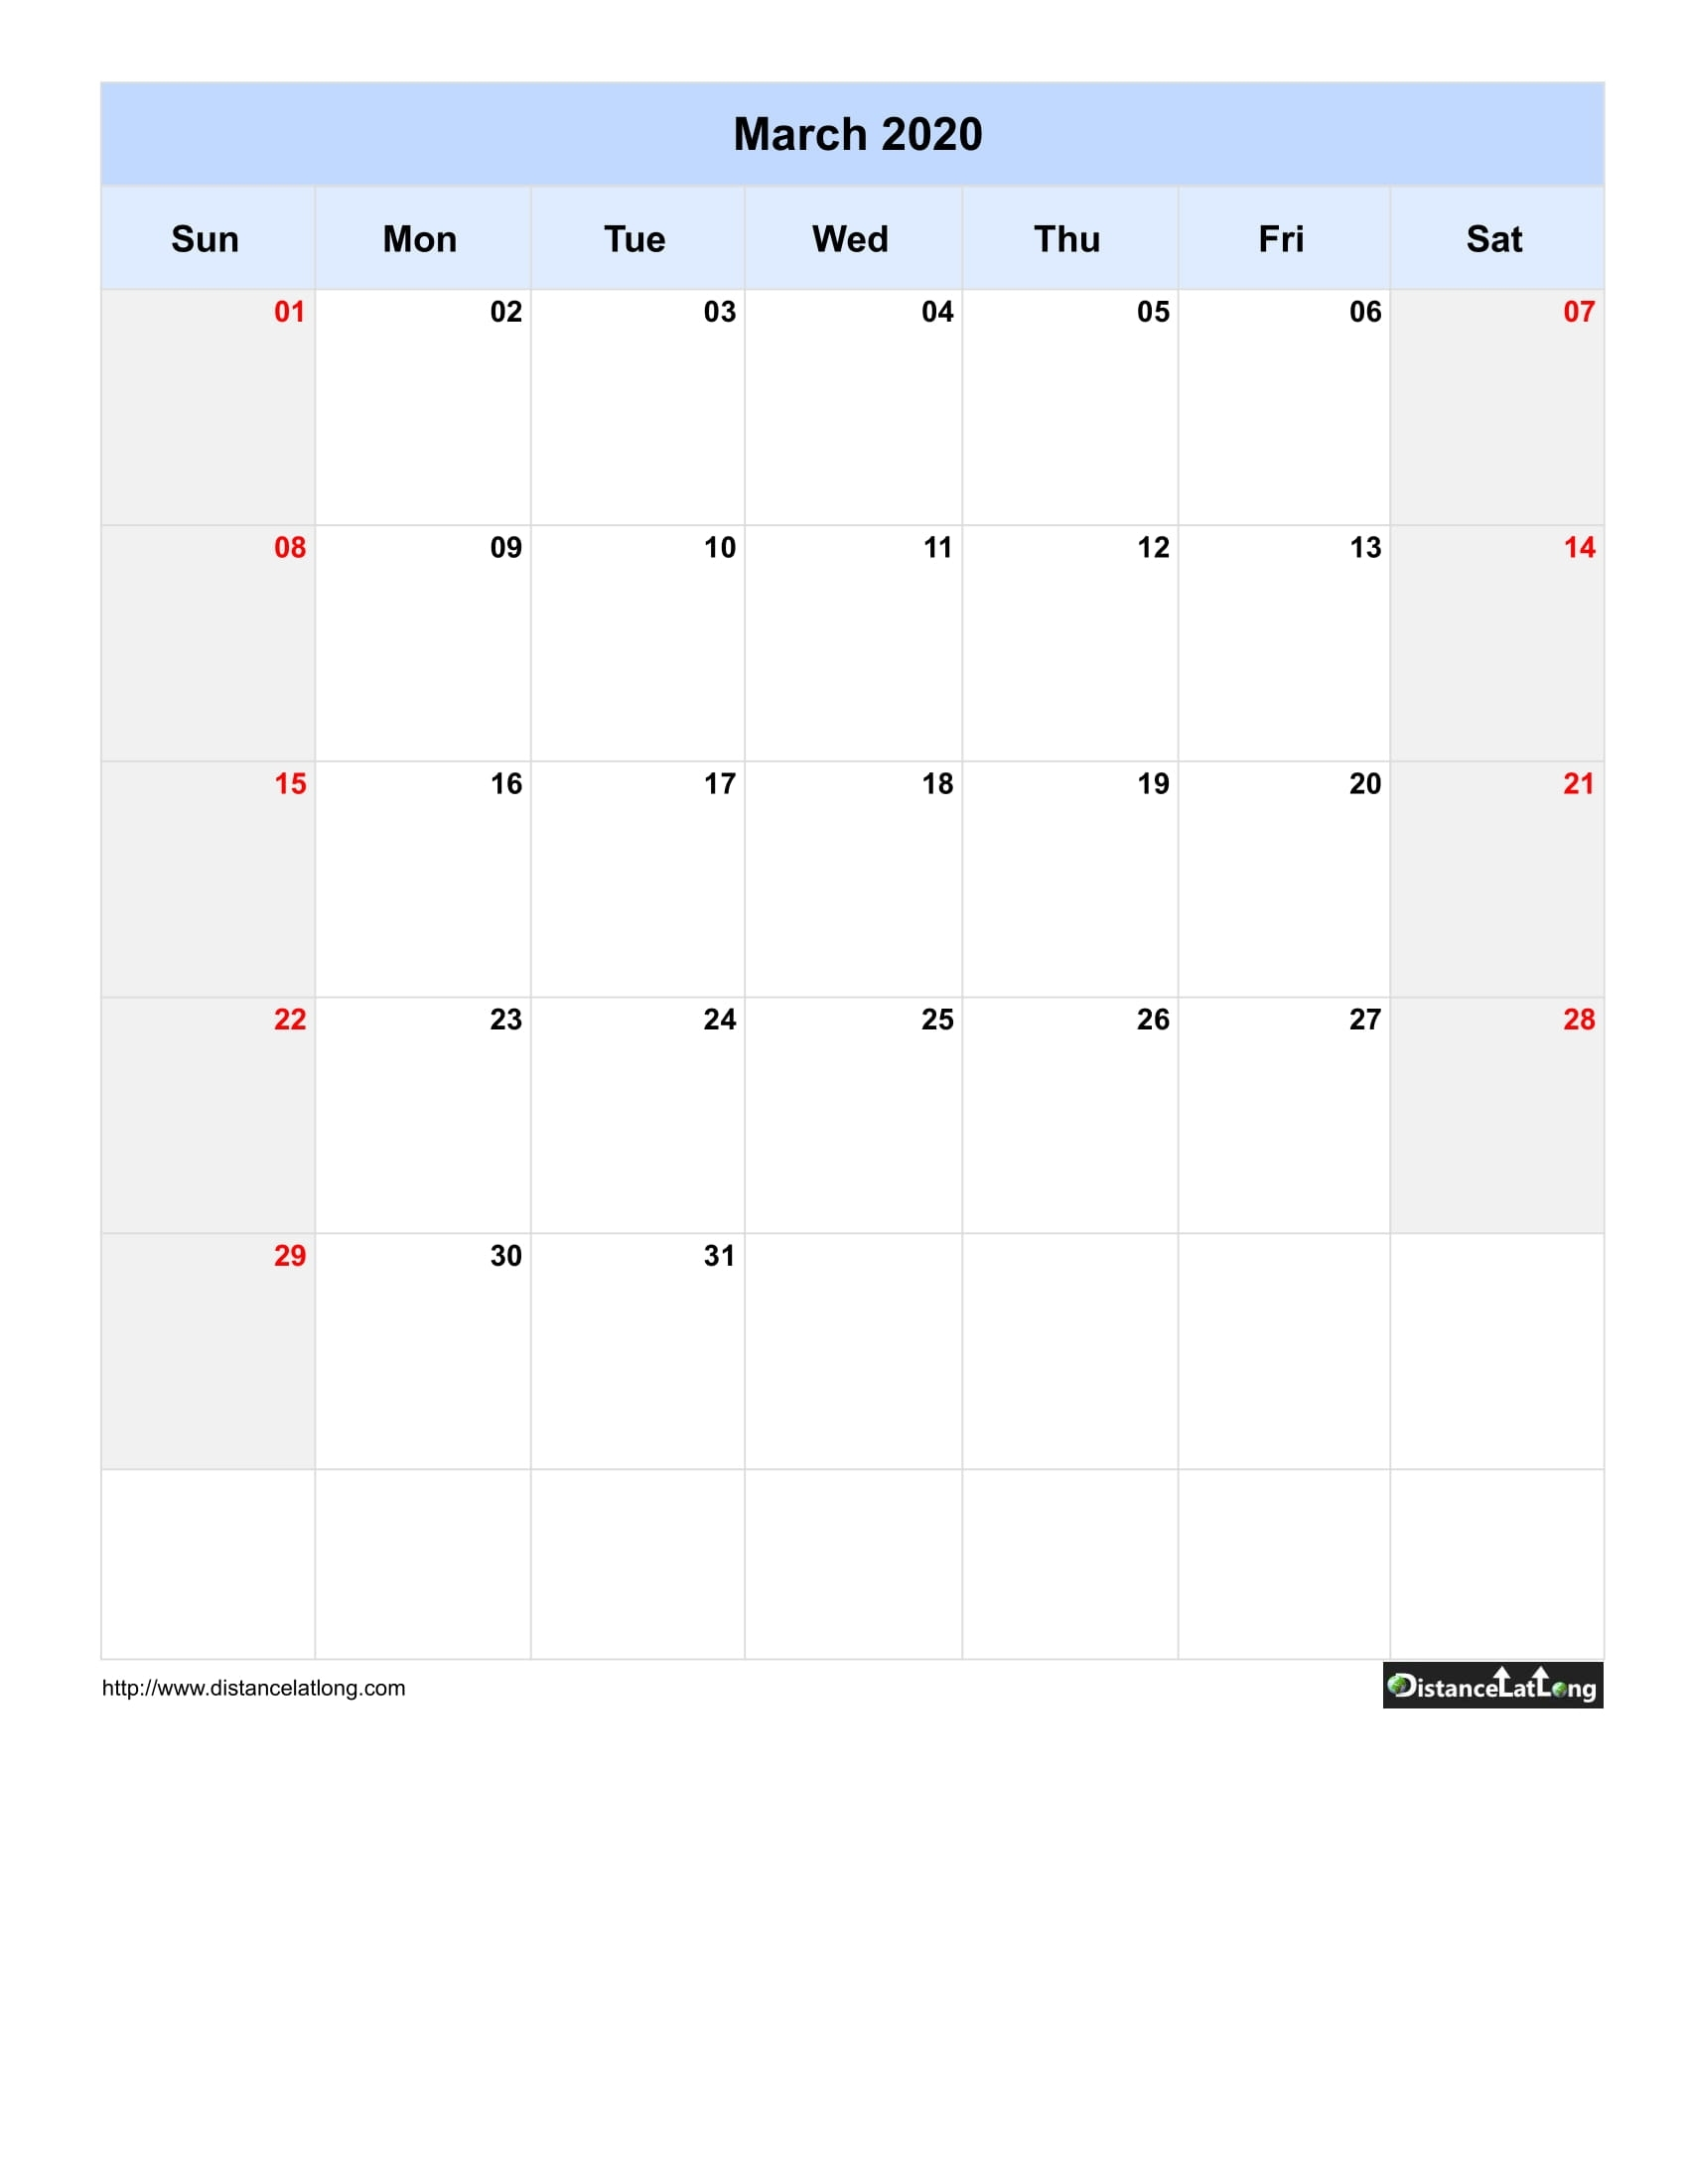 March 2020 Calendars For Pdf, Words And Jpg Formats